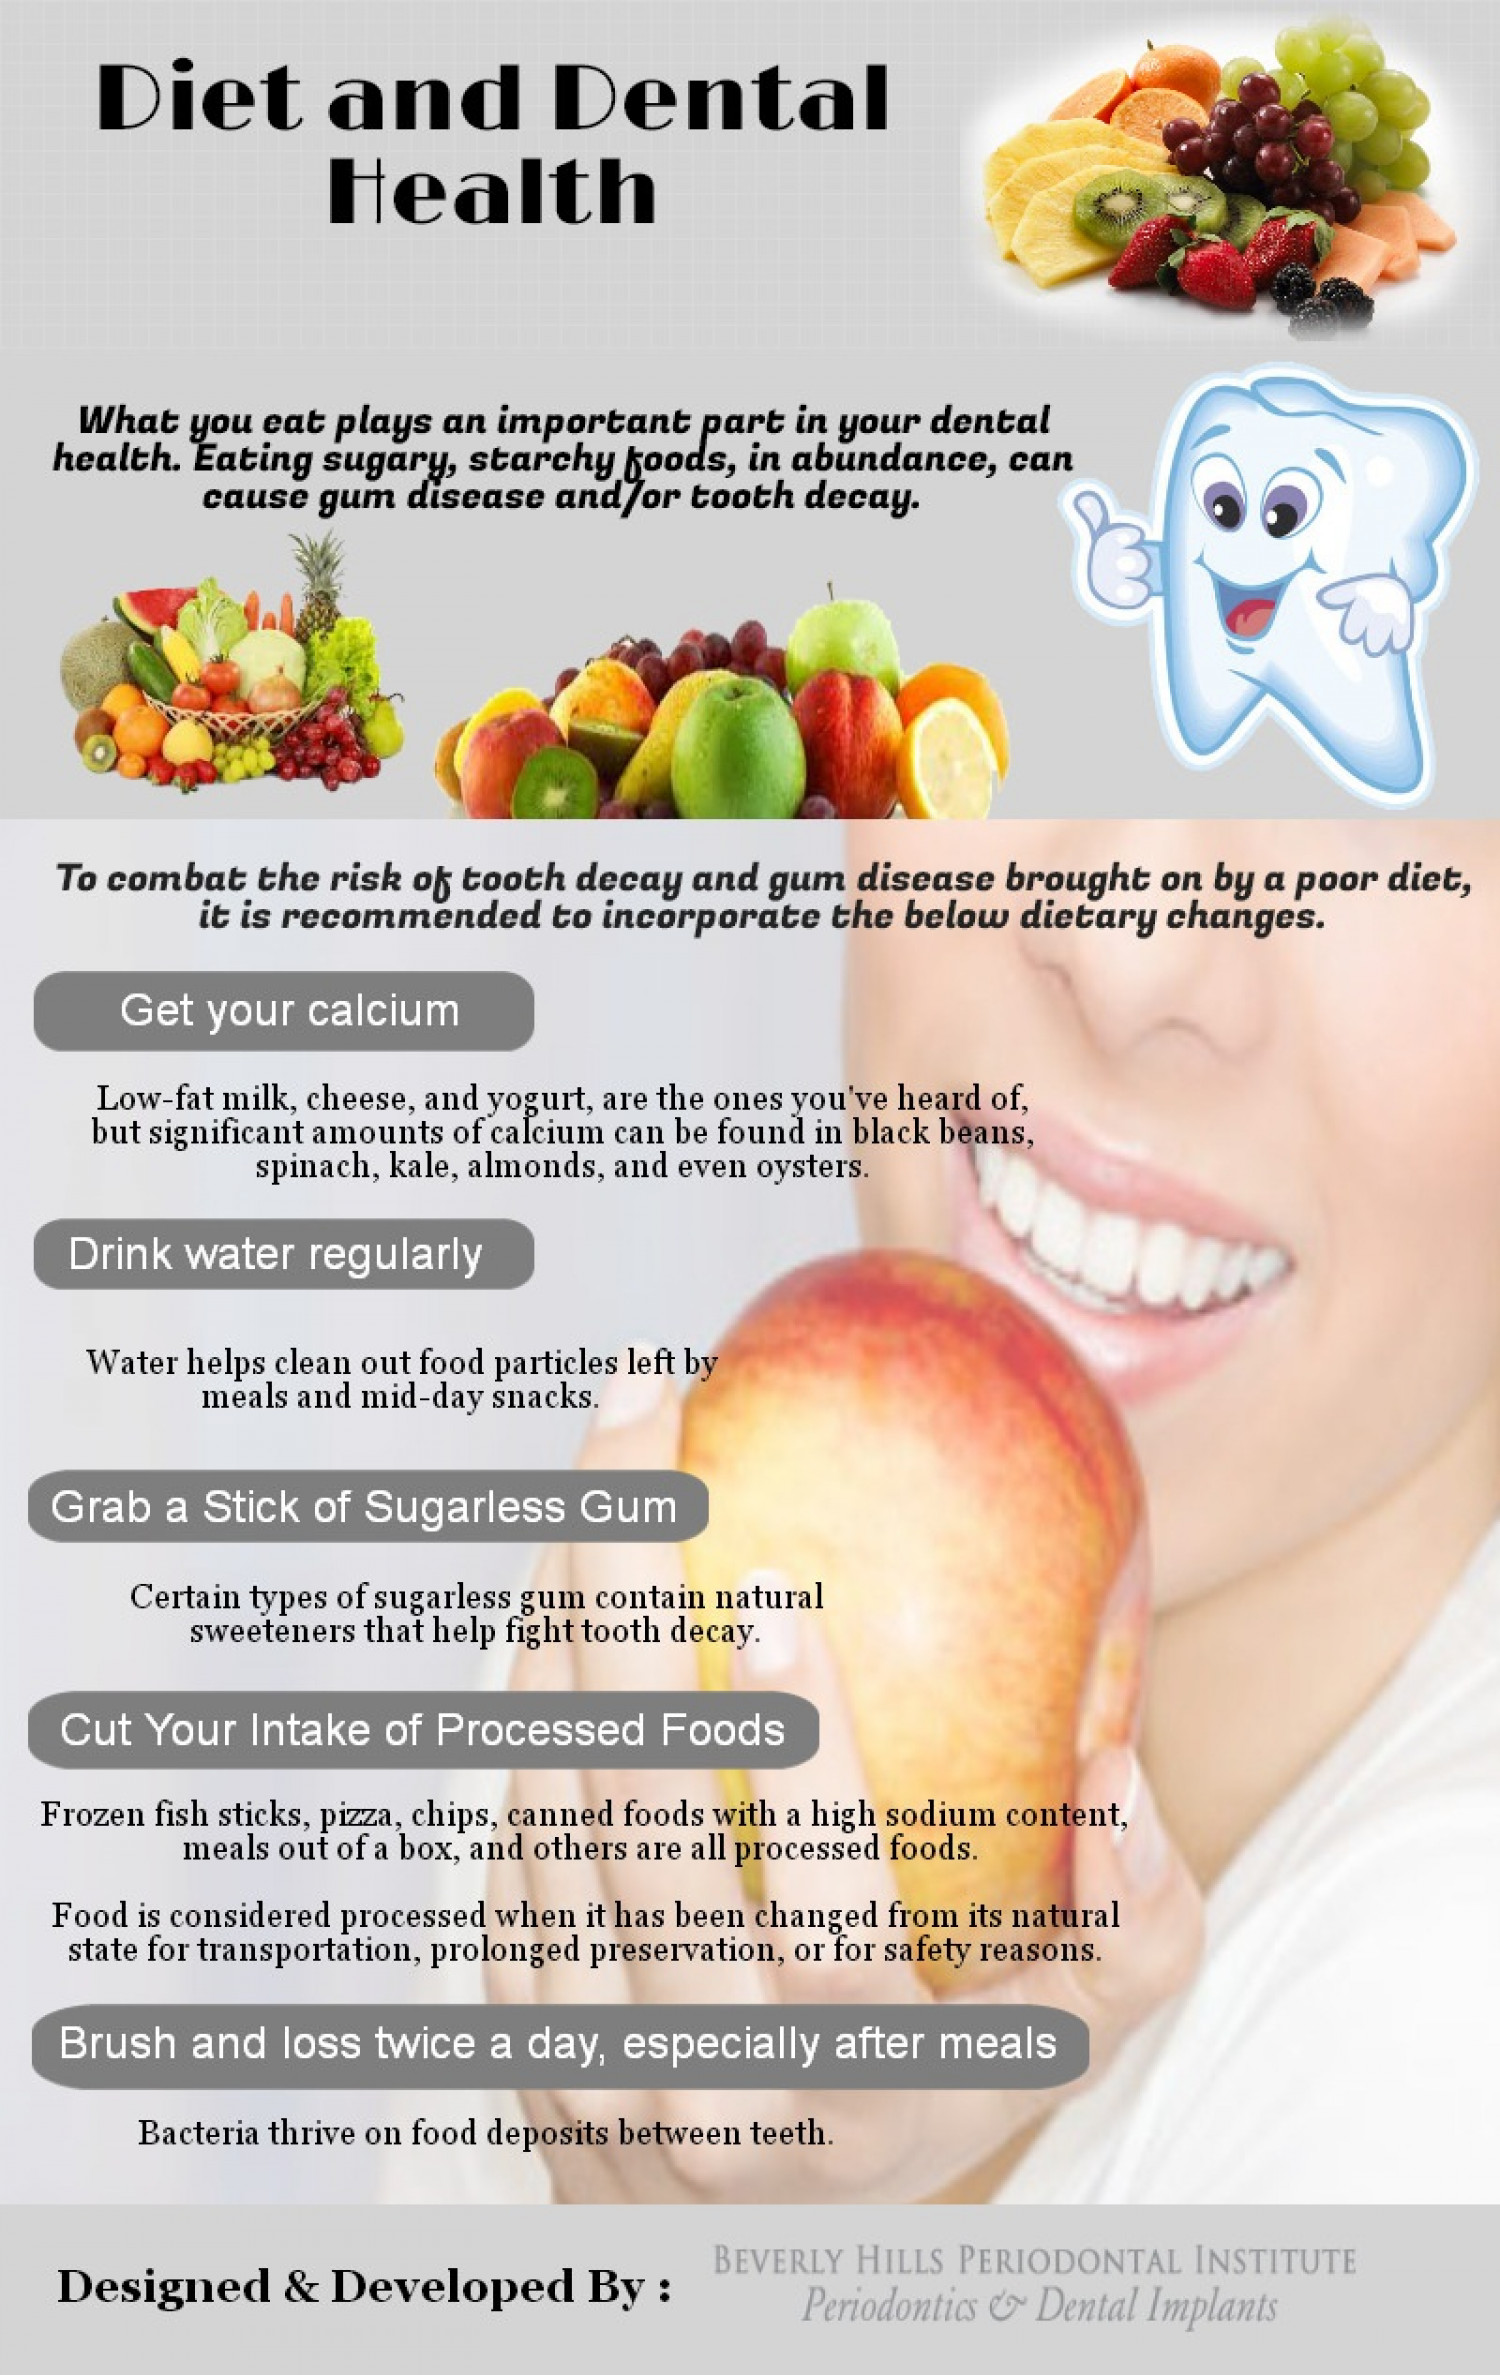 Diet and Dental Health Infographic